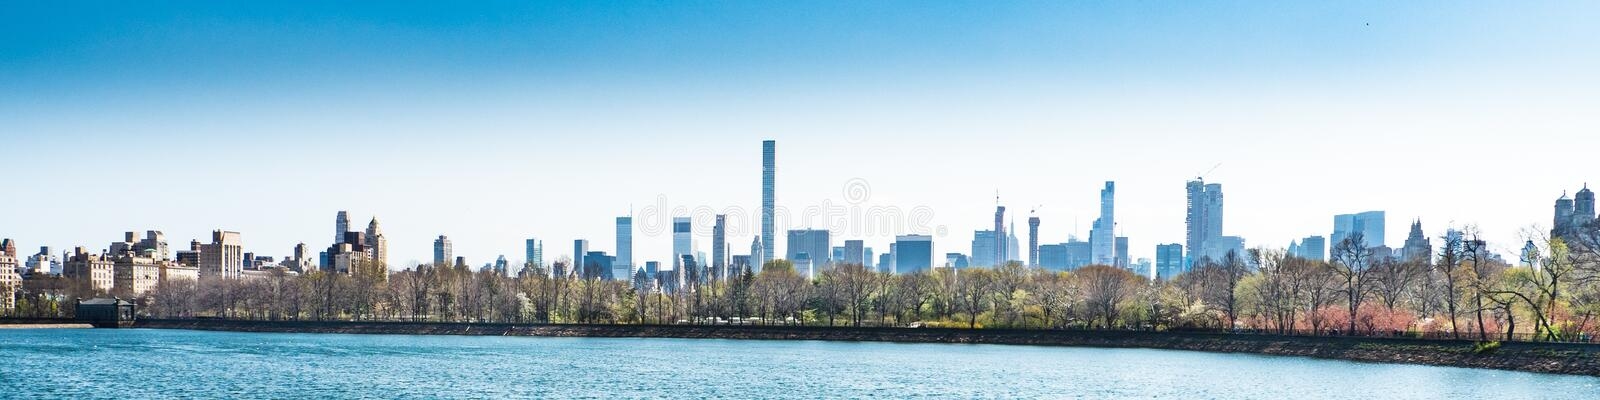 Skyline, Water, City, Daytime royalty free stock photography